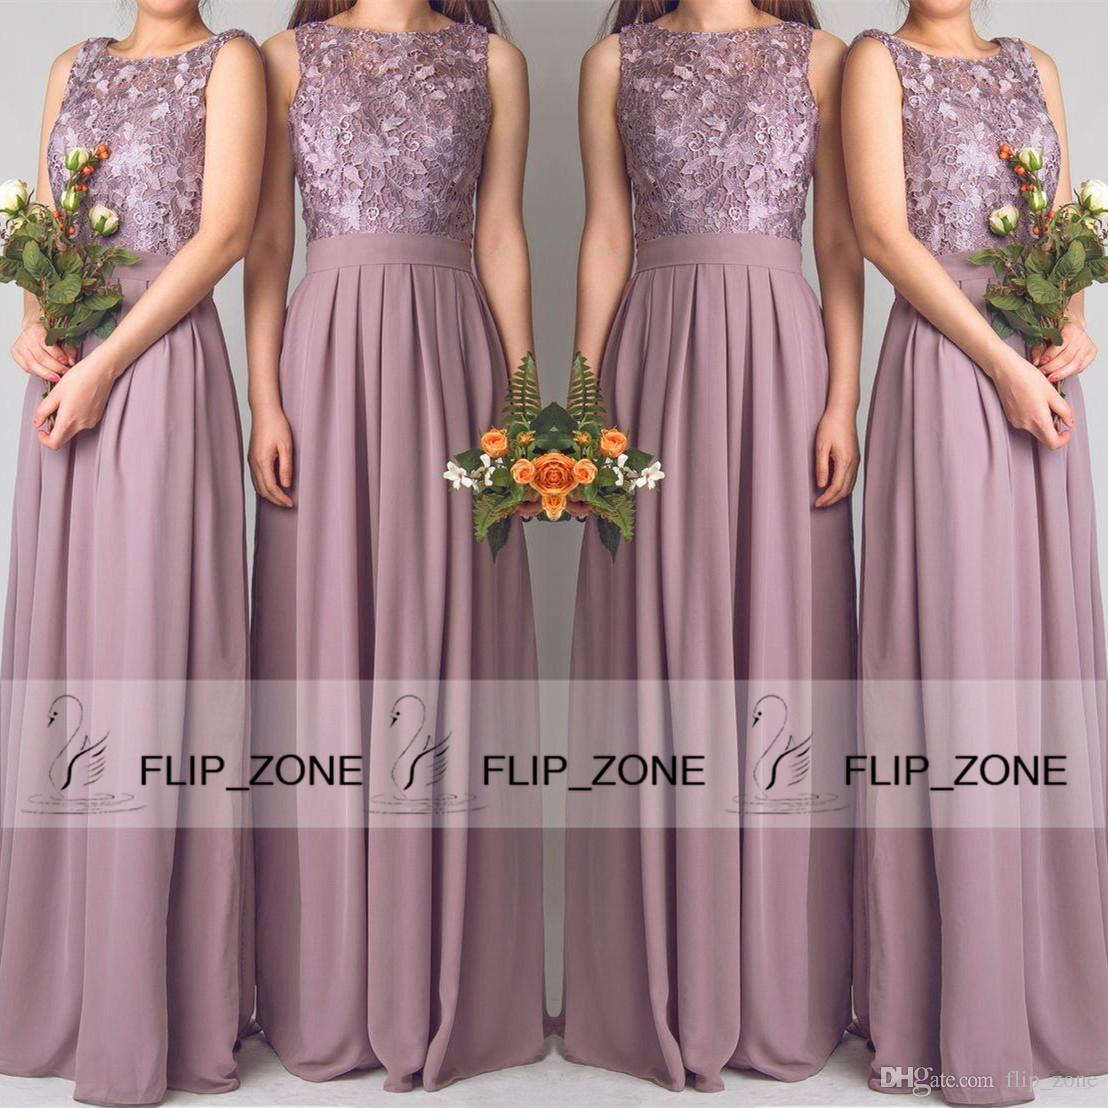 Violet Bridesmaid Dresses